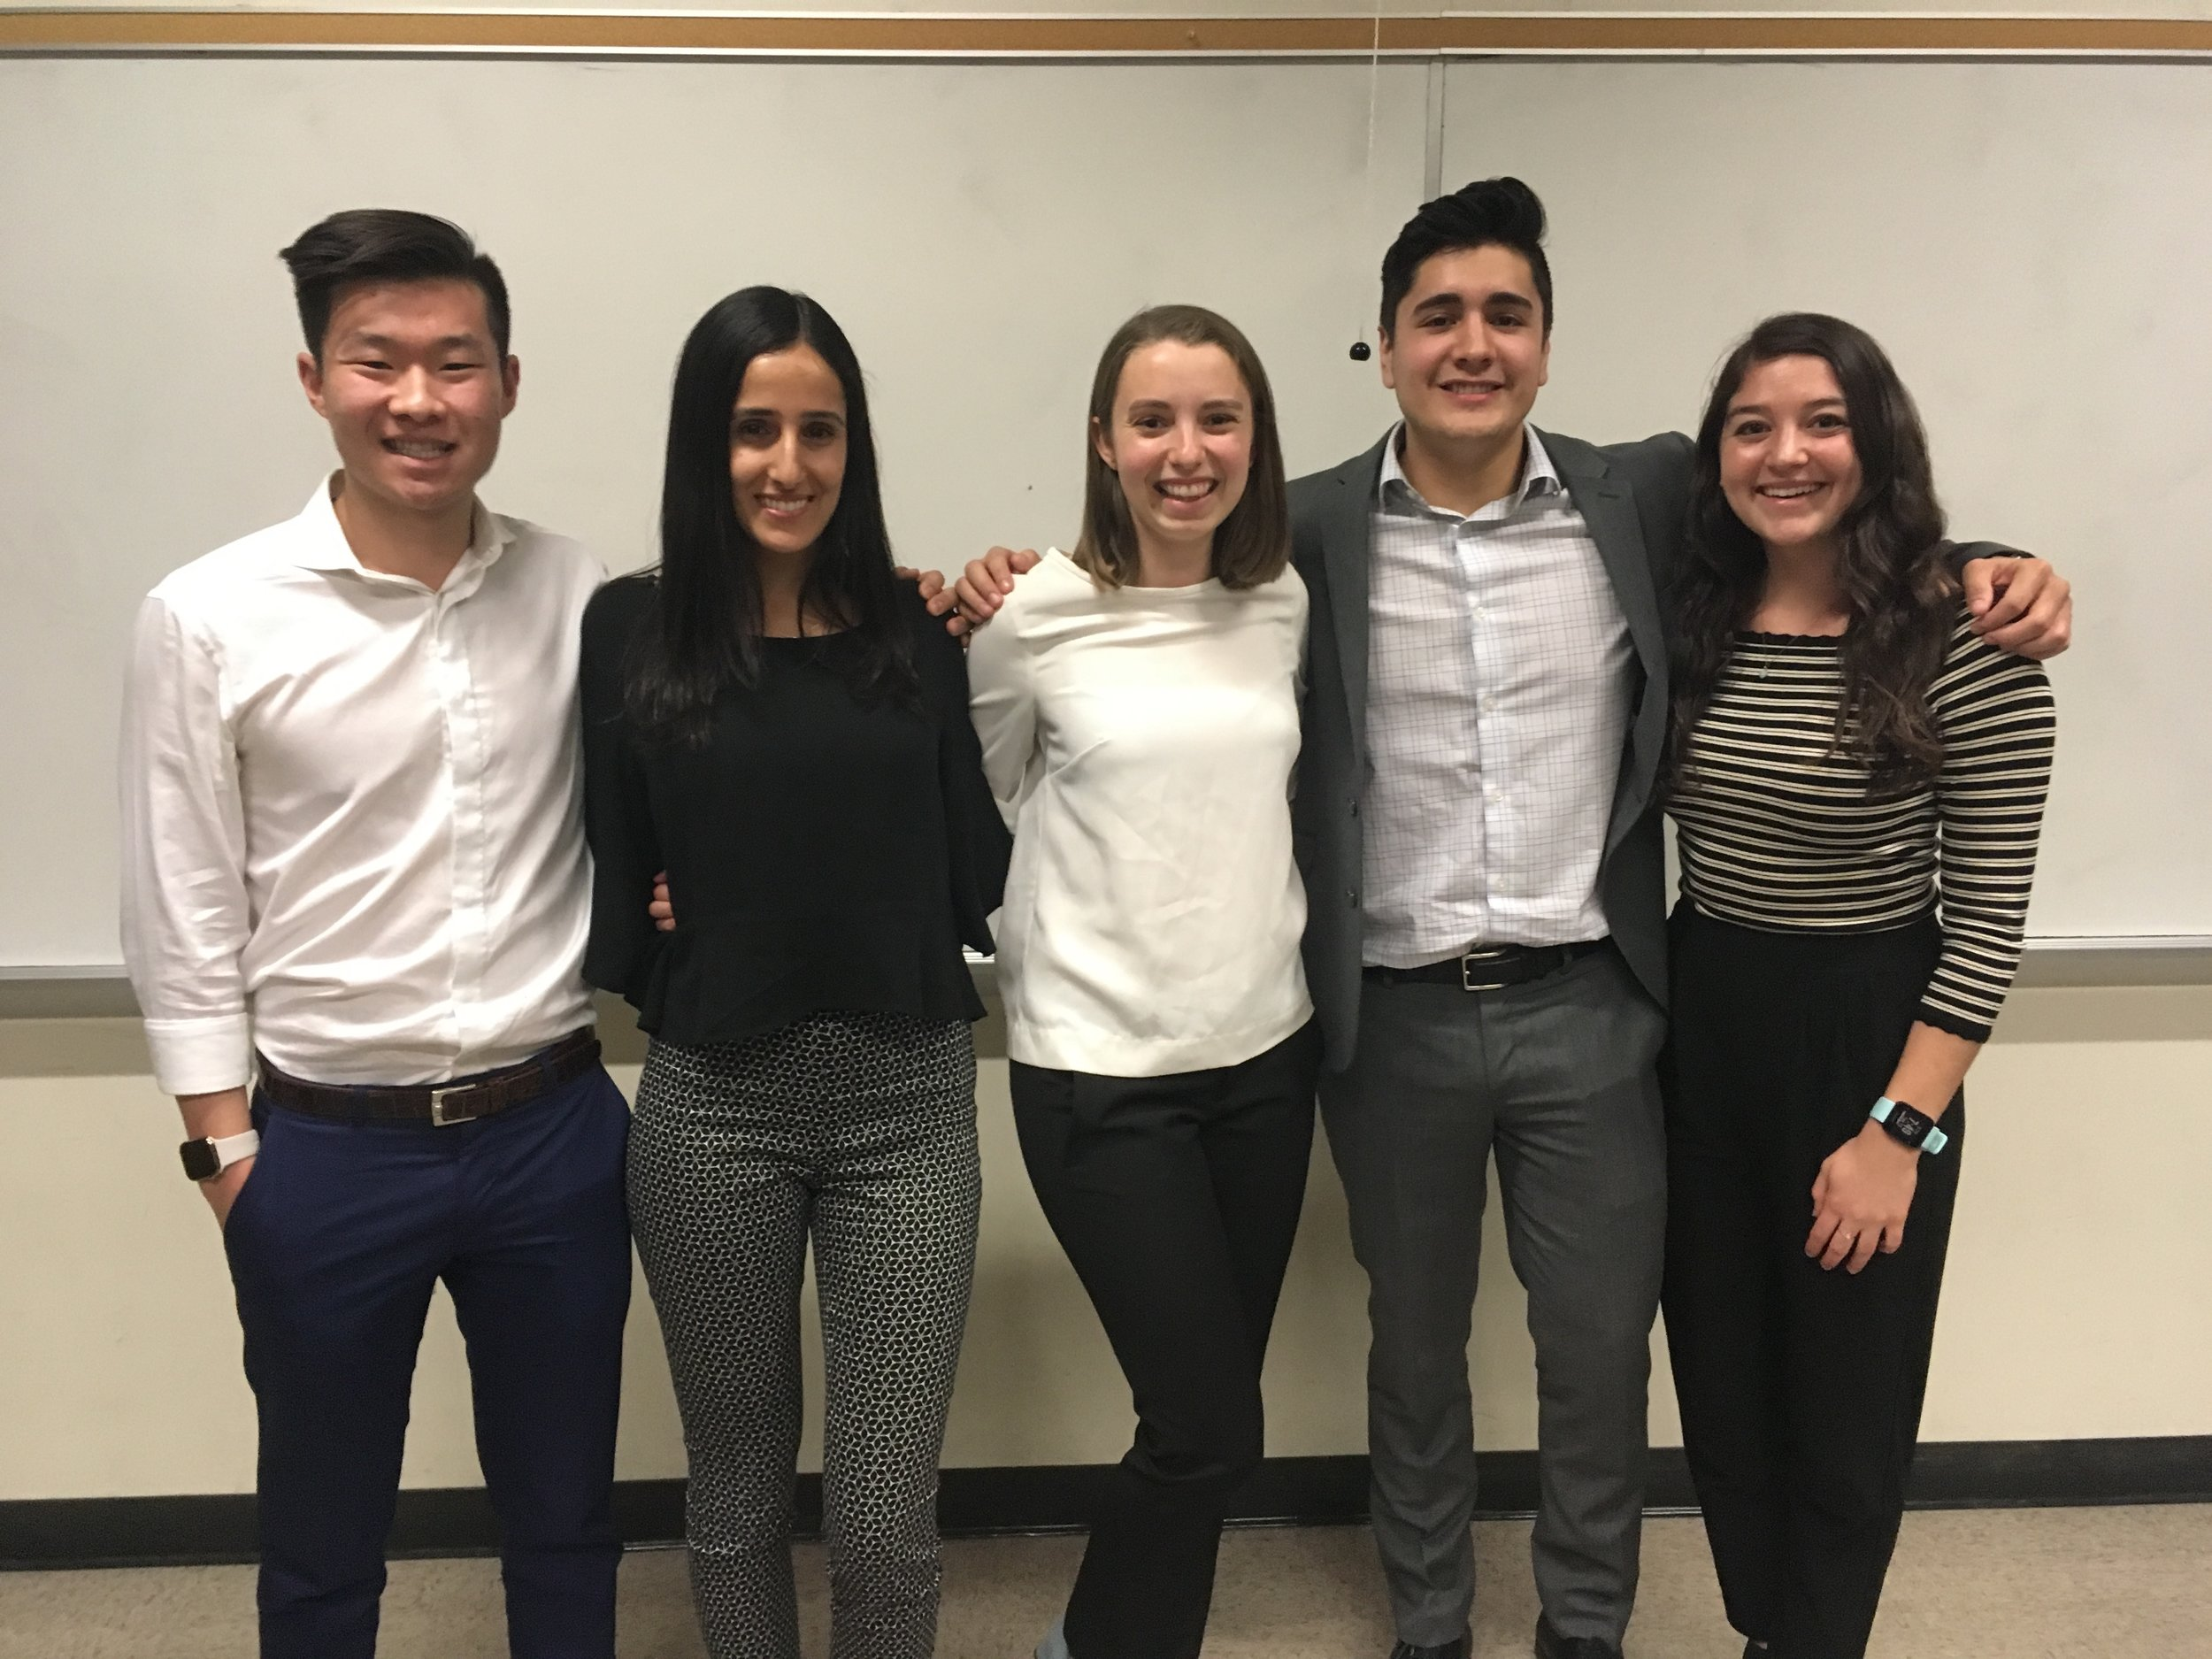 UCLA students Max, Dana, Anna, Rudy, and Tula supported our organization in part of the Social Enterprise Academy